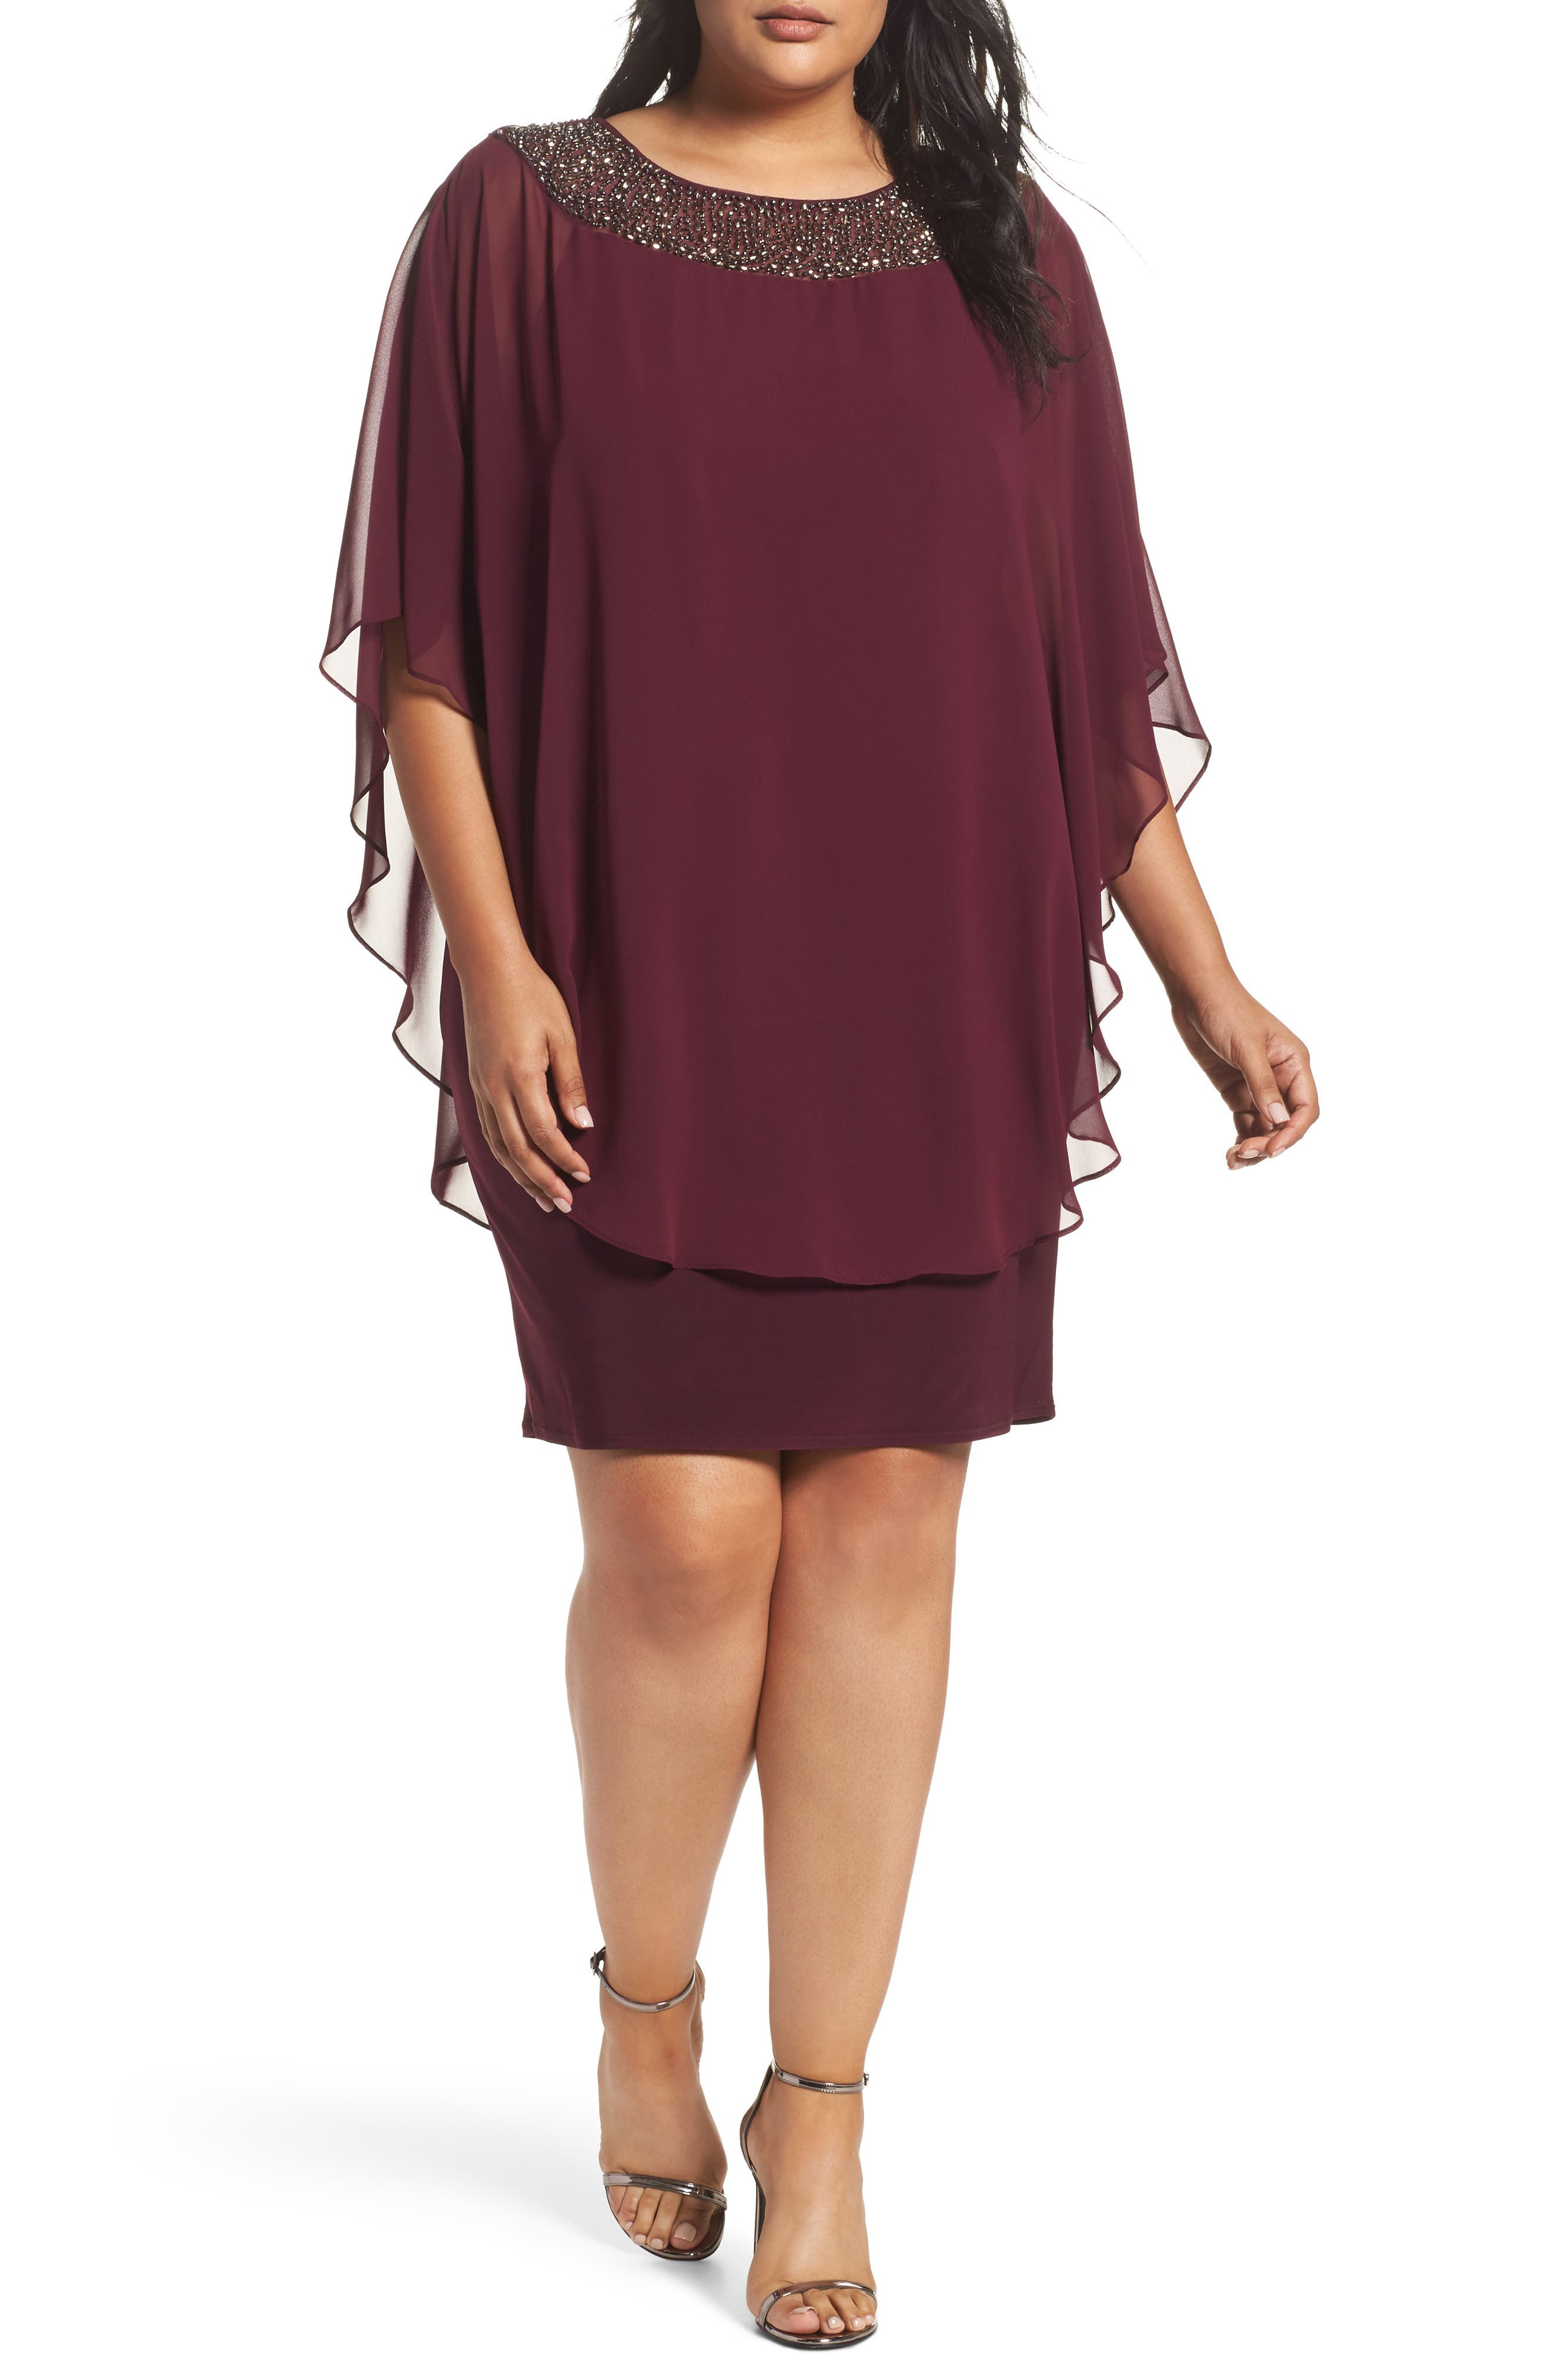 Alternate Image 1 Selected - Xscape Embellished Chiffon Overlay Jersey Sheath Dress (Plus Size)